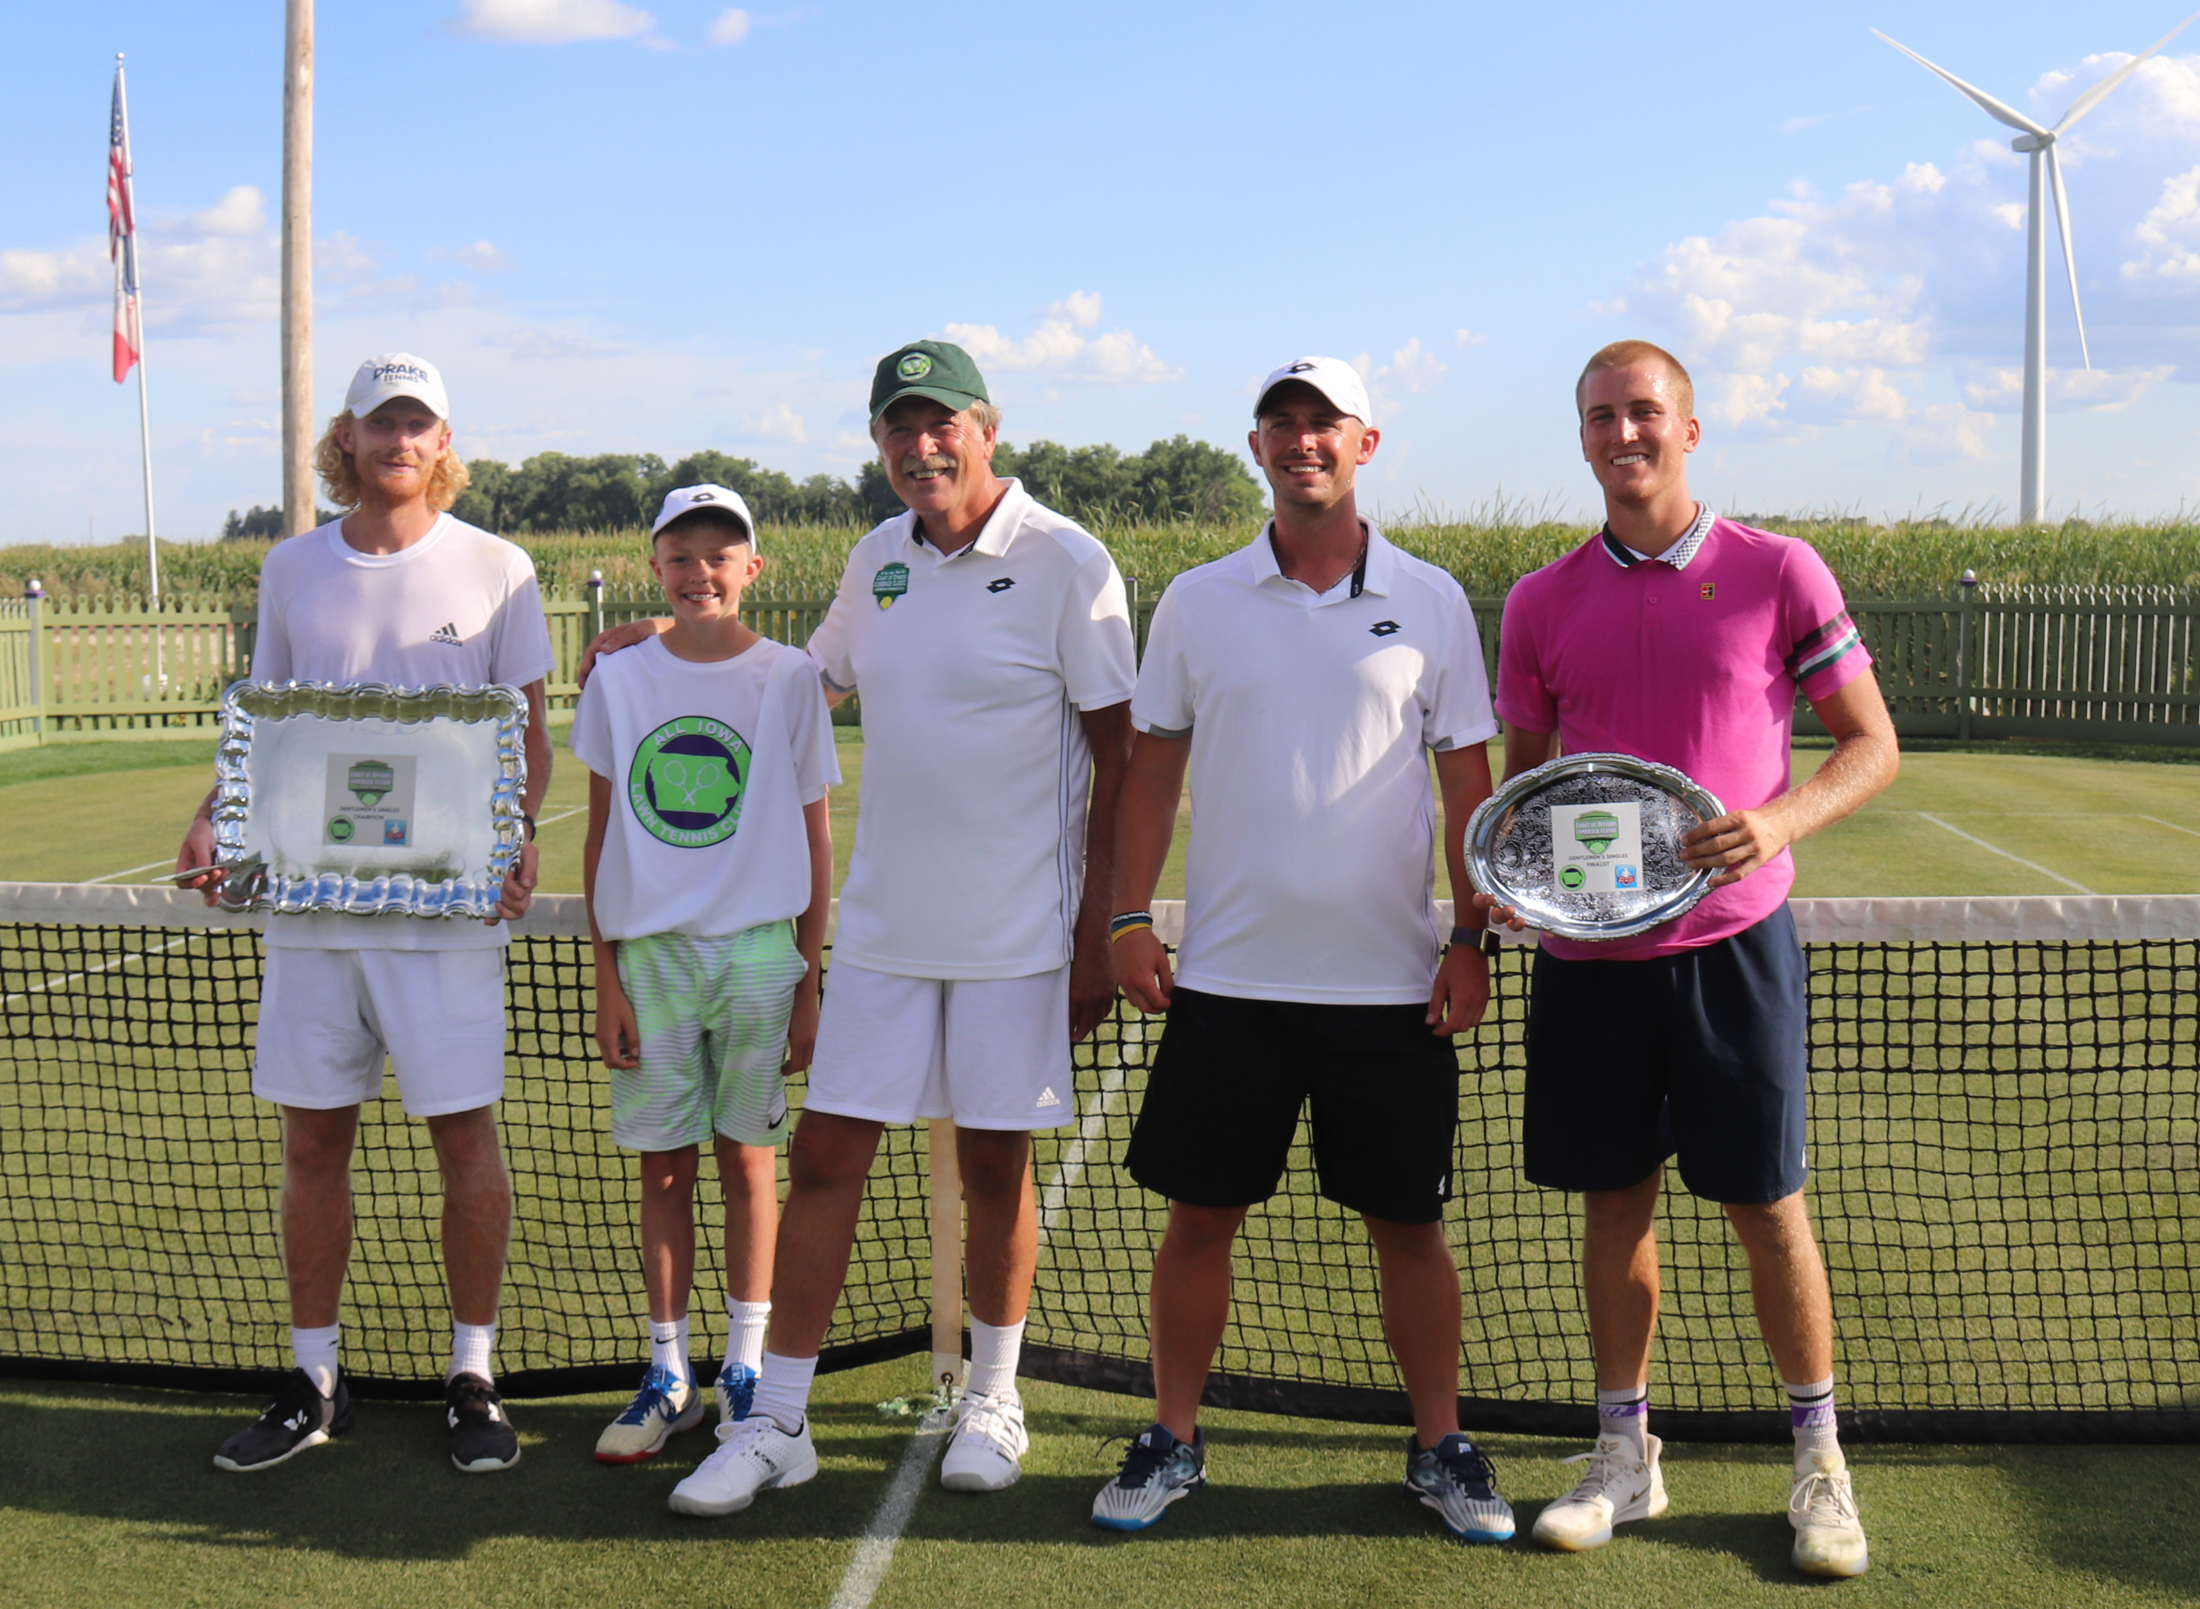 Players leave mark at Court of Dreams Comeback Tennis Series Classic